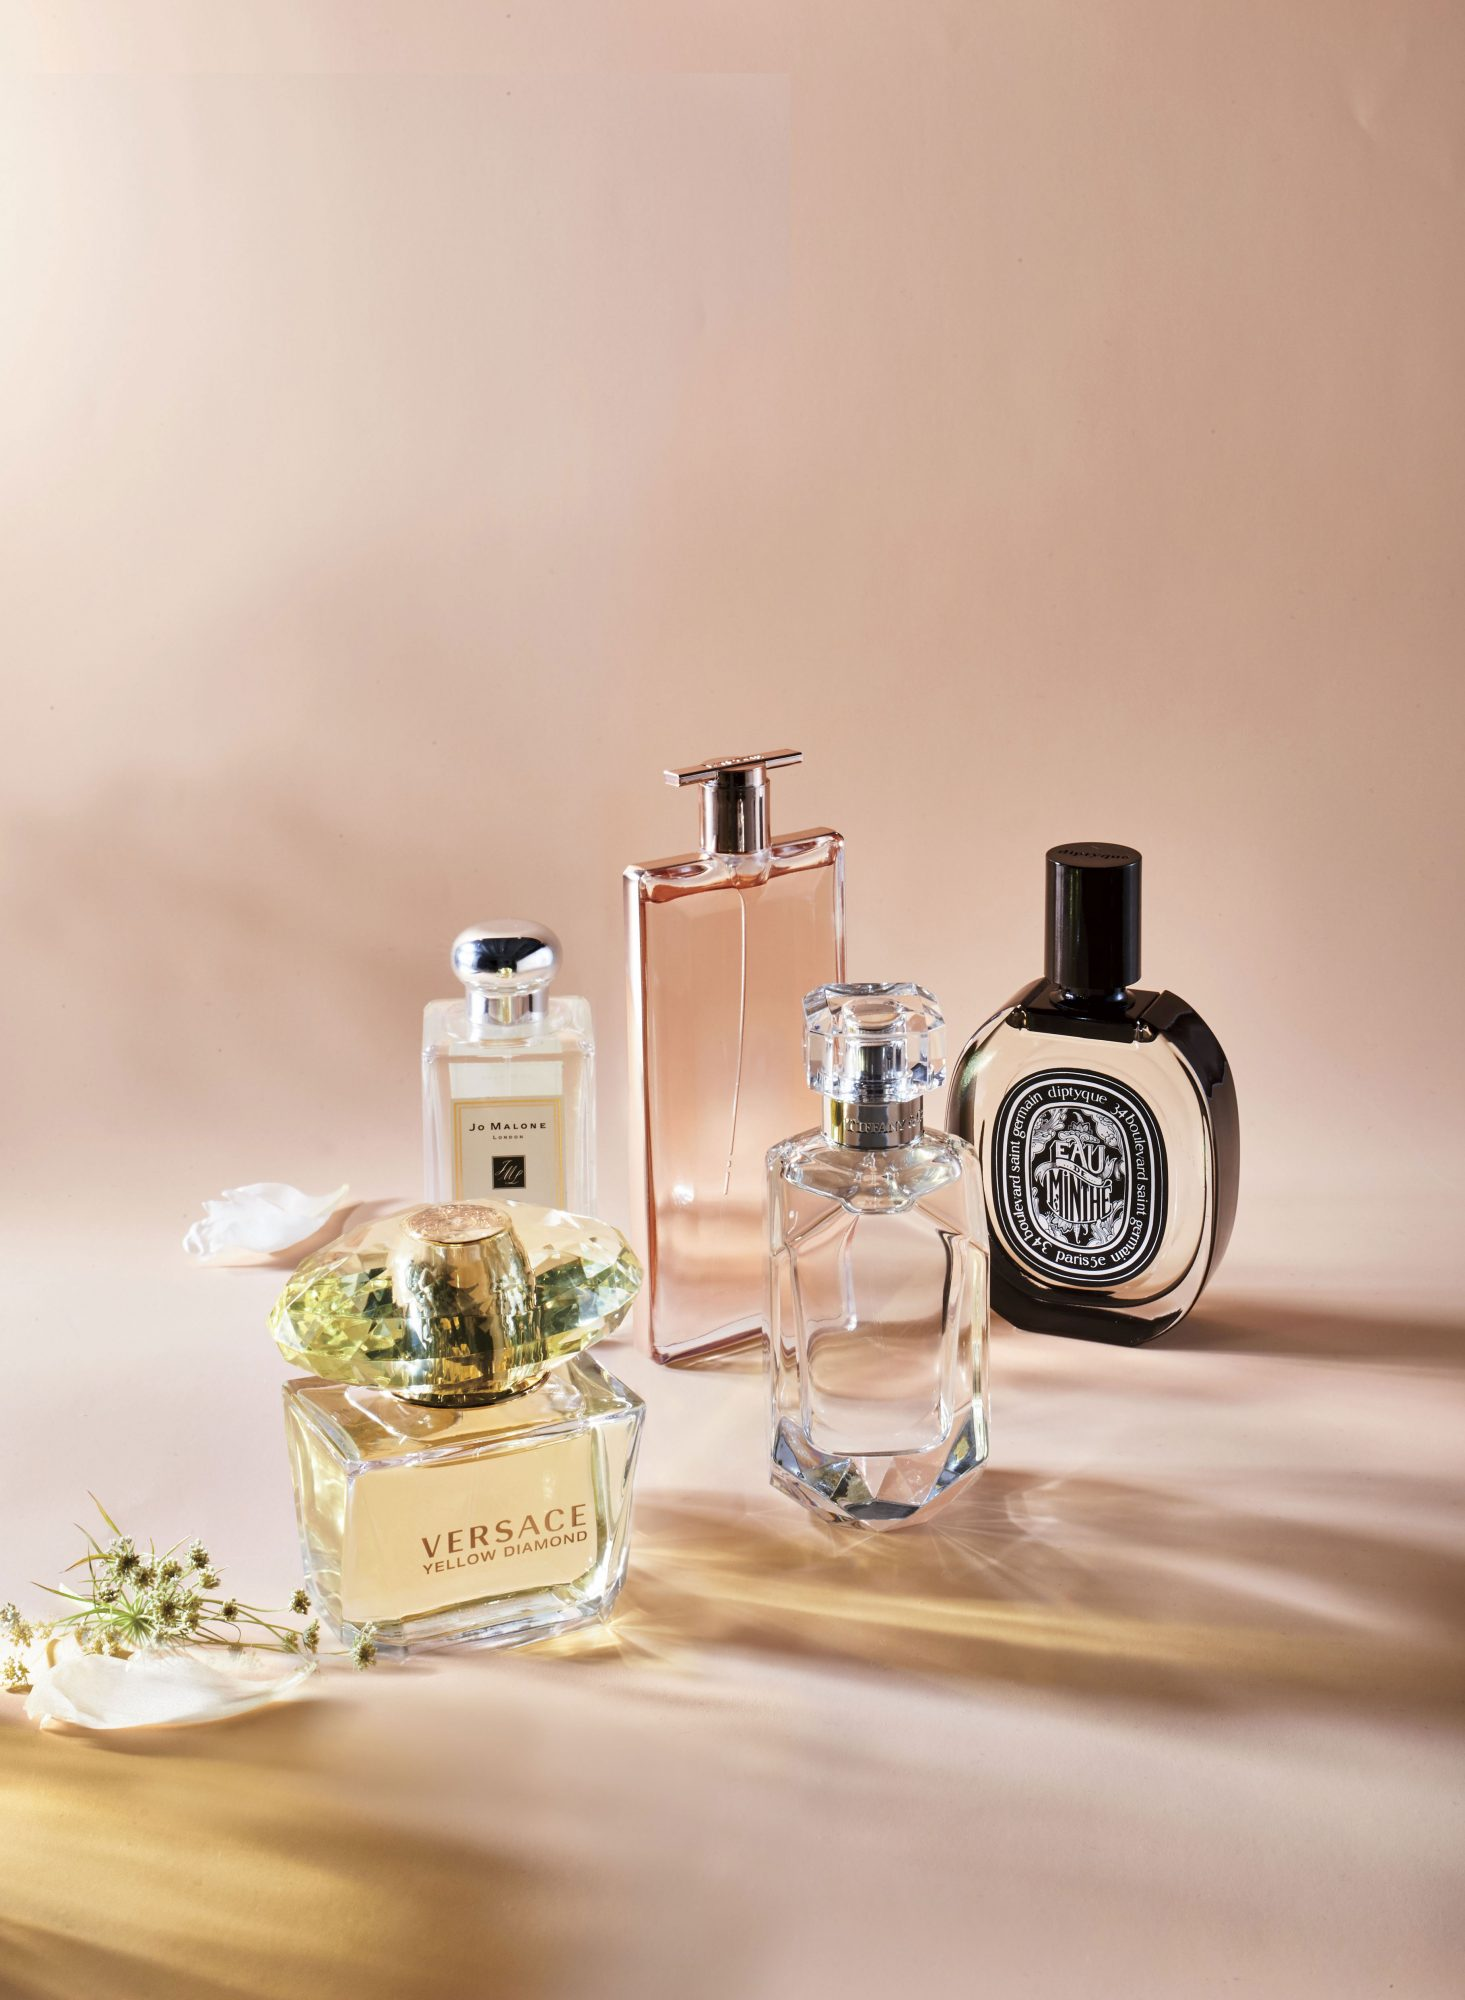 Transitional Fragrances for Summer to Fall